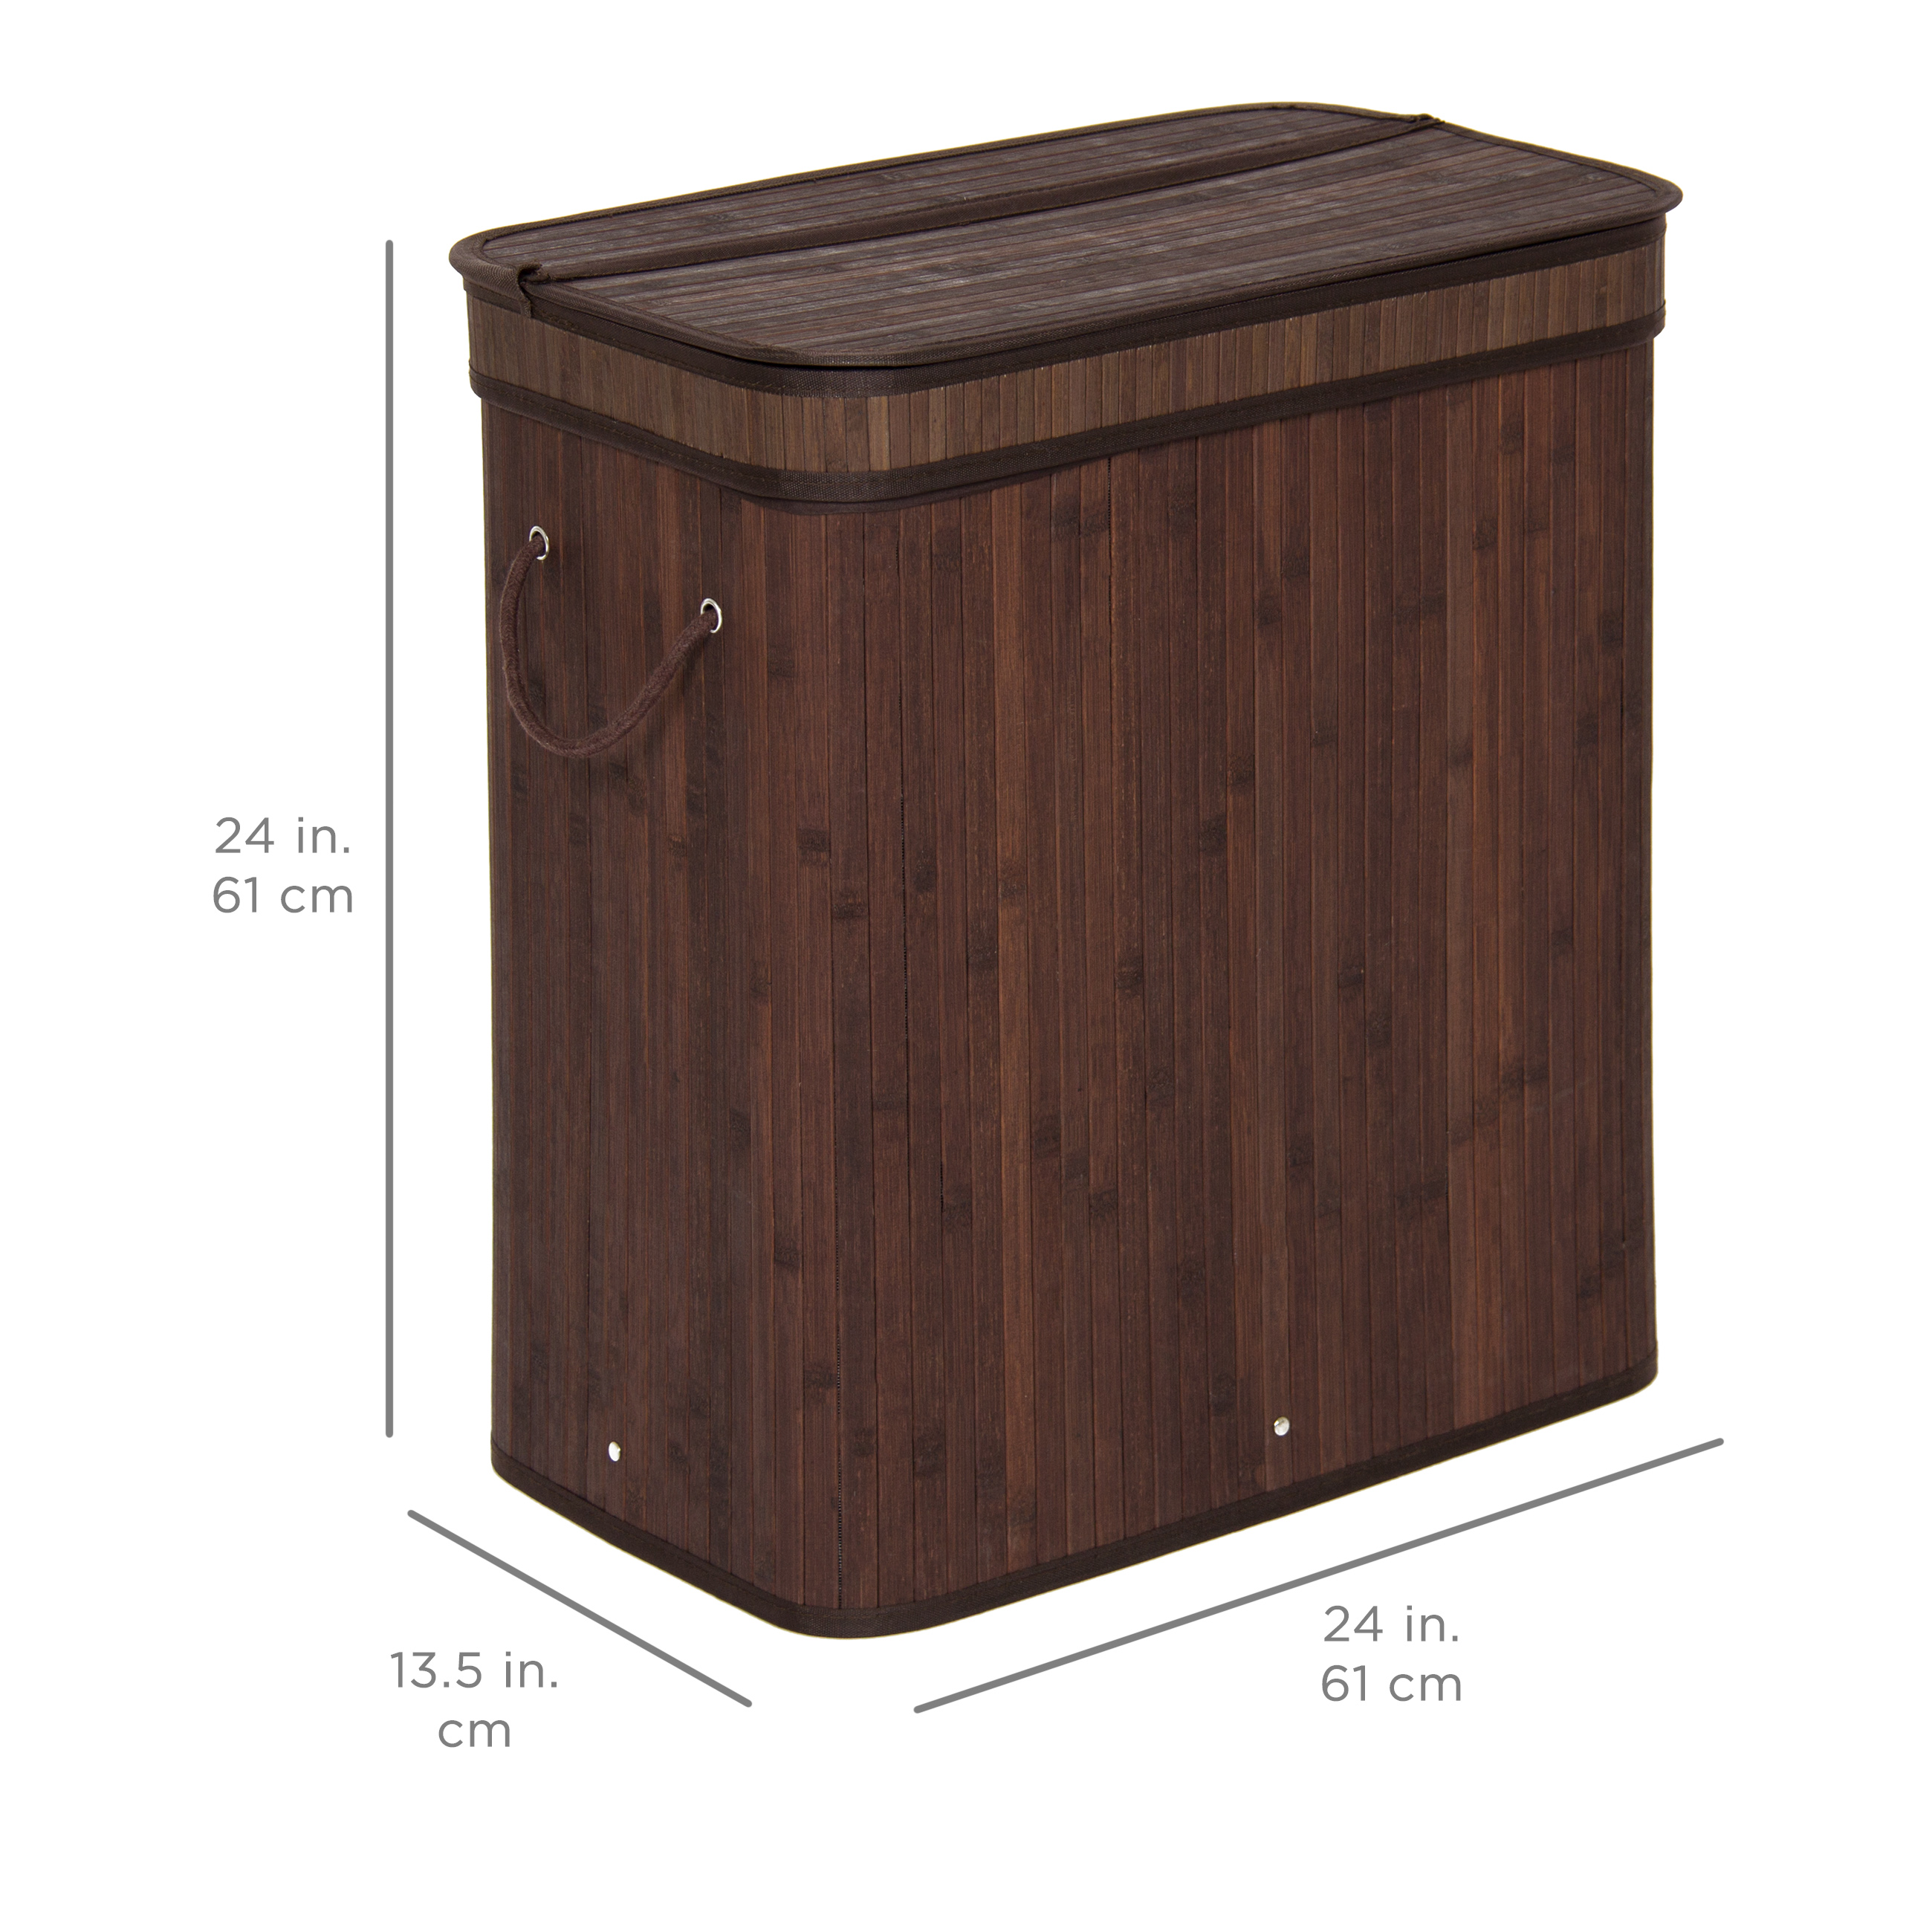 Best choice products bamboo double hamper laundry basket dark brown ebay - Bamboo clothes hamper ...